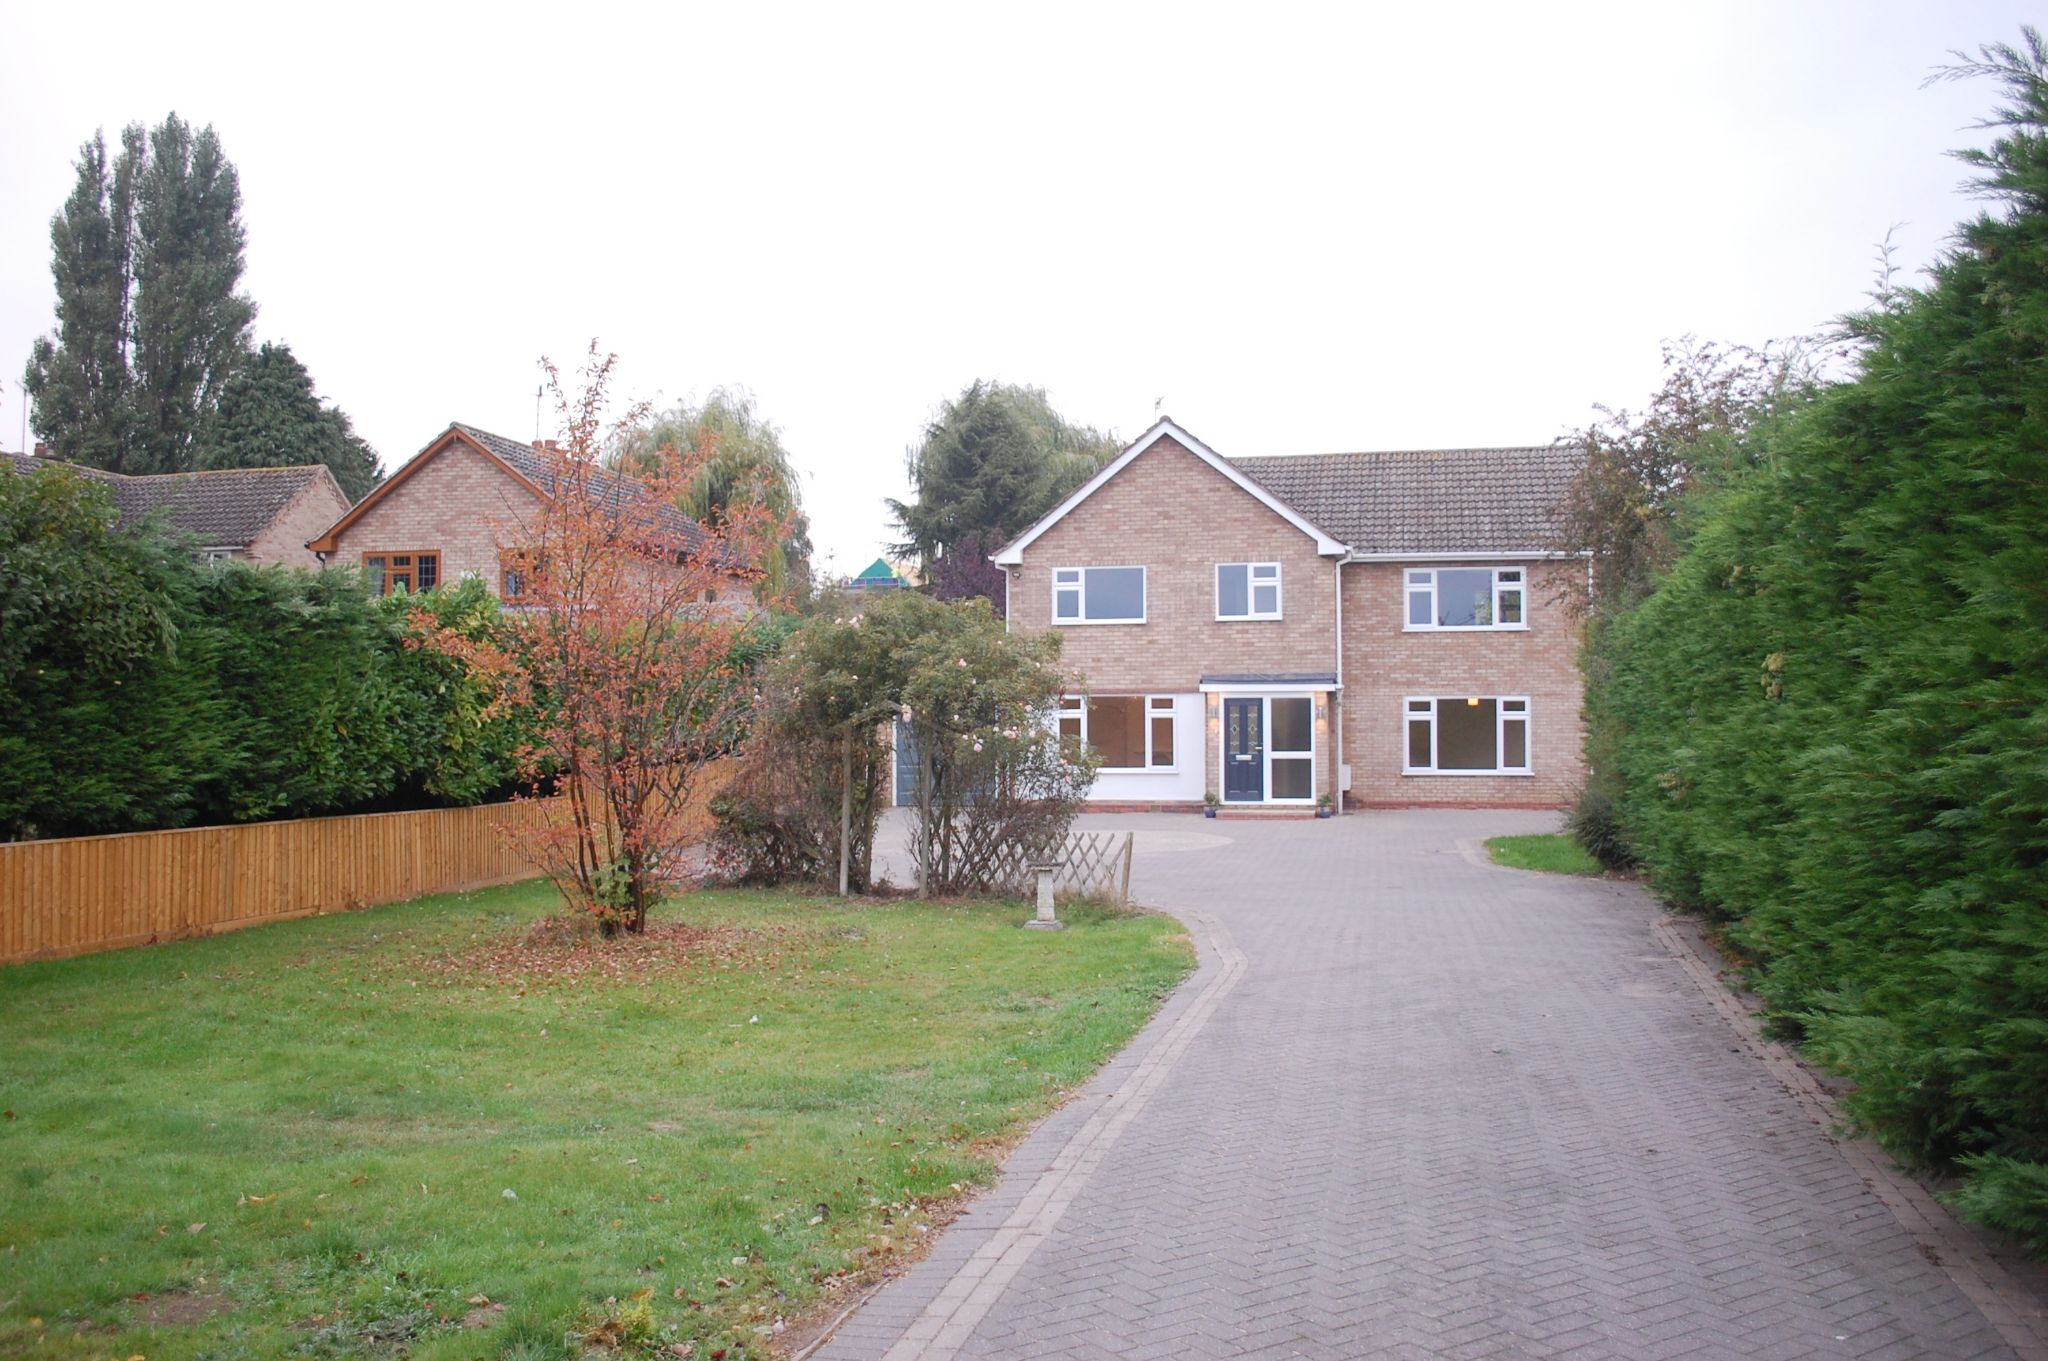 4 bedroom detached house For Sale in Bidford-on-avon, Alcester - Property photograph